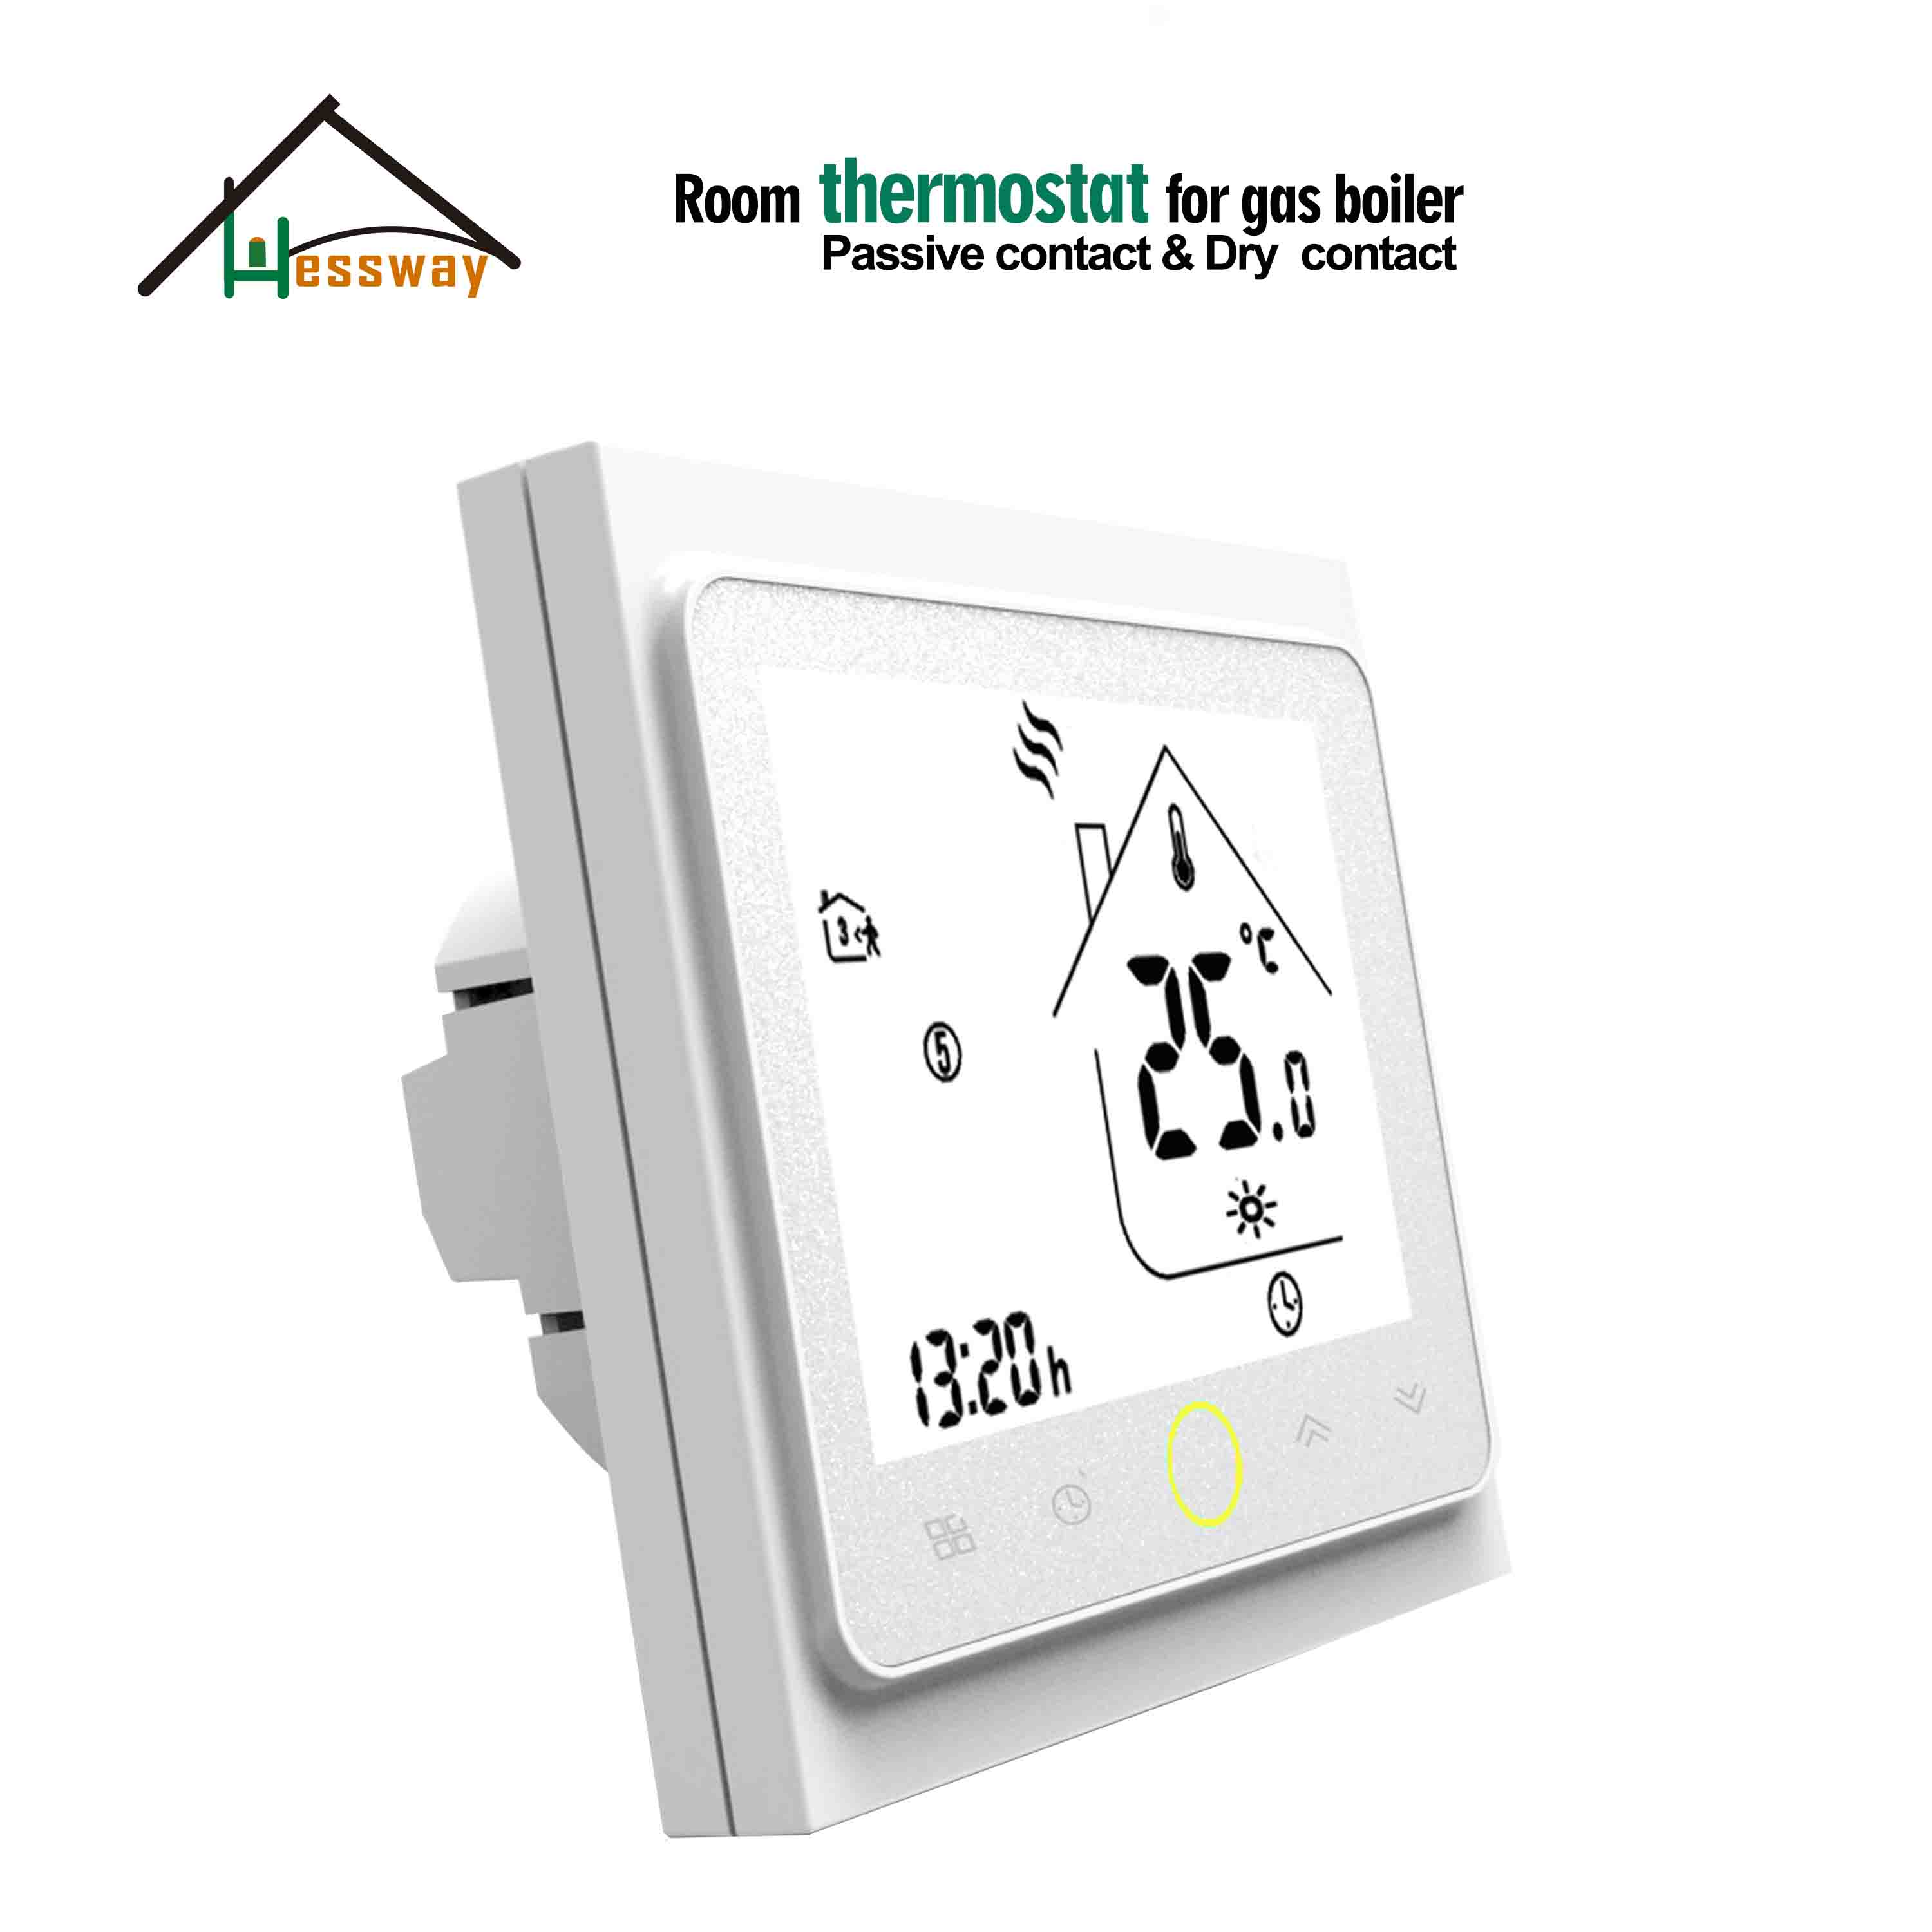 HESSWAY  Weekly Programmable Room Wall Mounted Boiler Heating Controls Thermostat For Dry Contact Relay